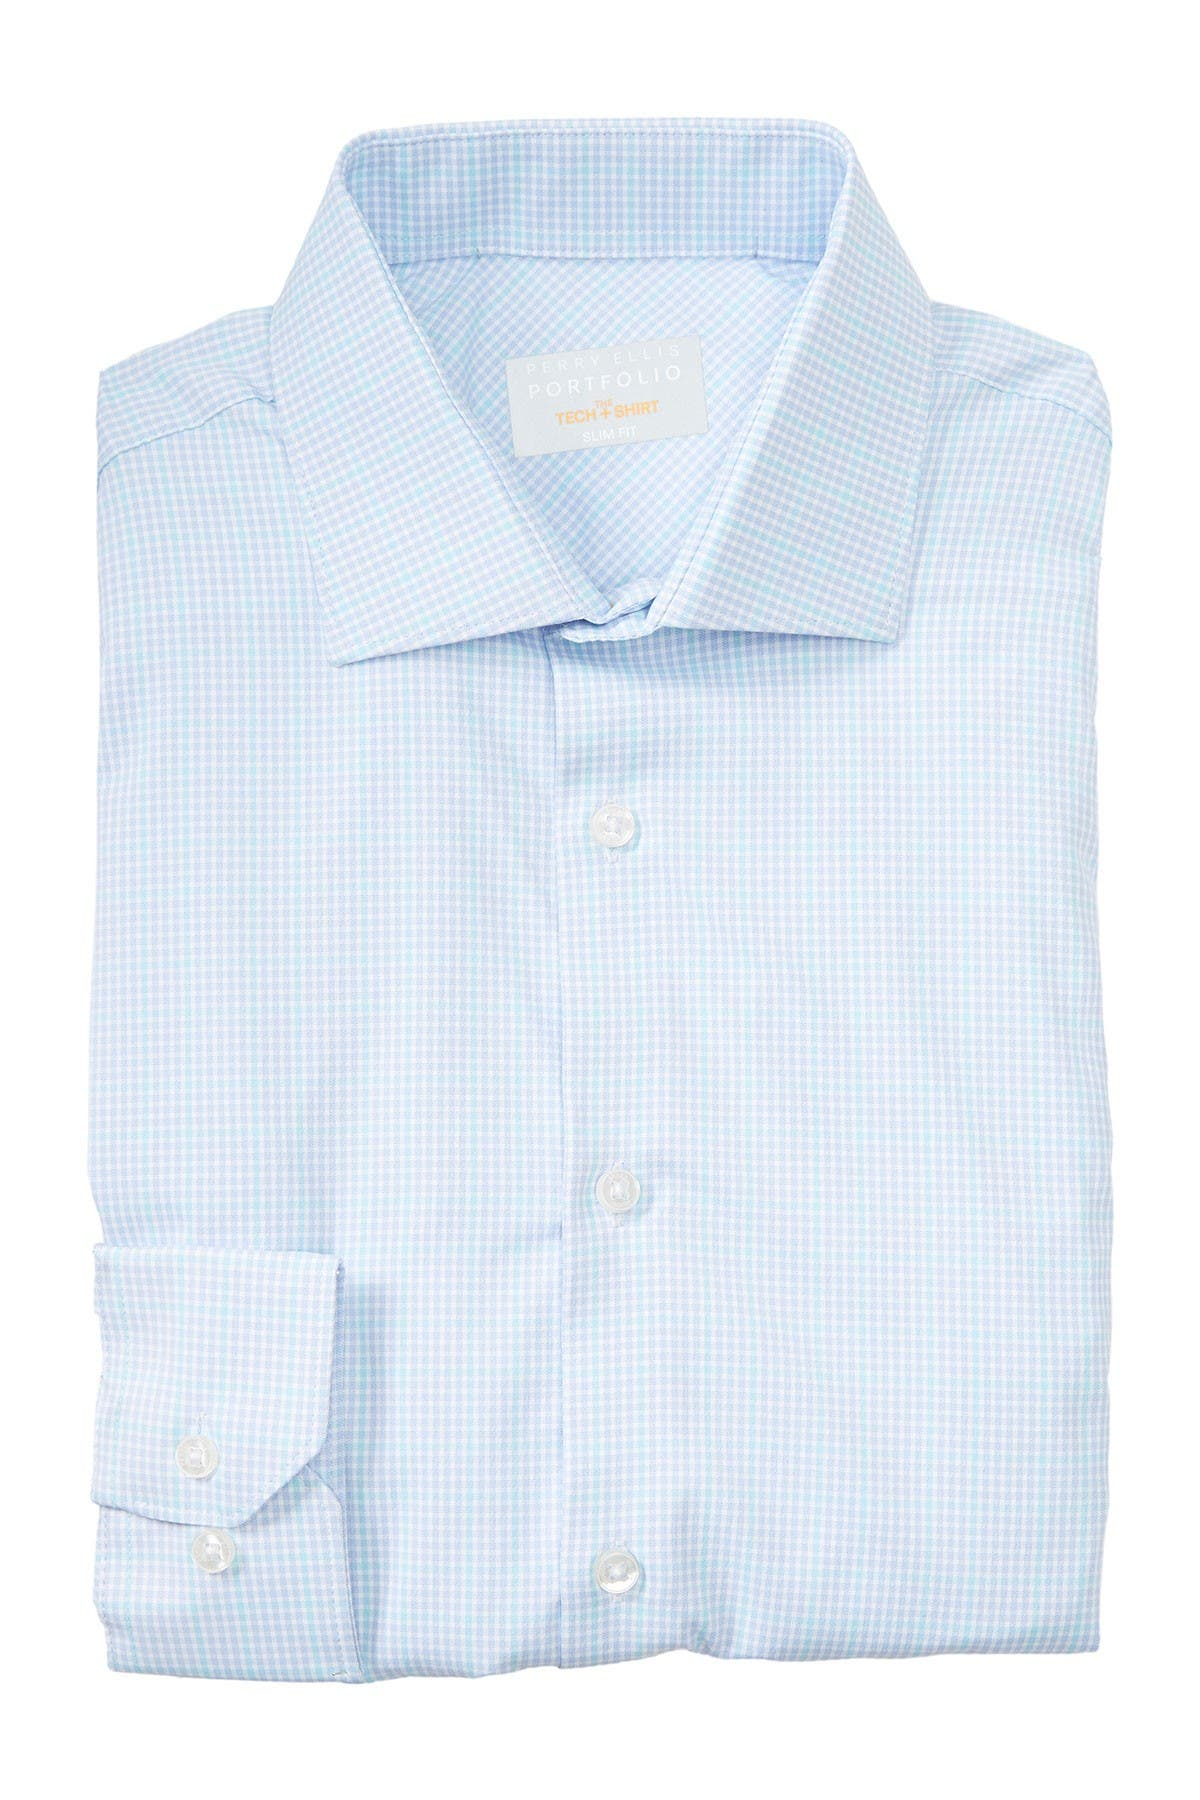 Image of Perry Ellis Check Print Long Sleeve Slim Fit Shirt